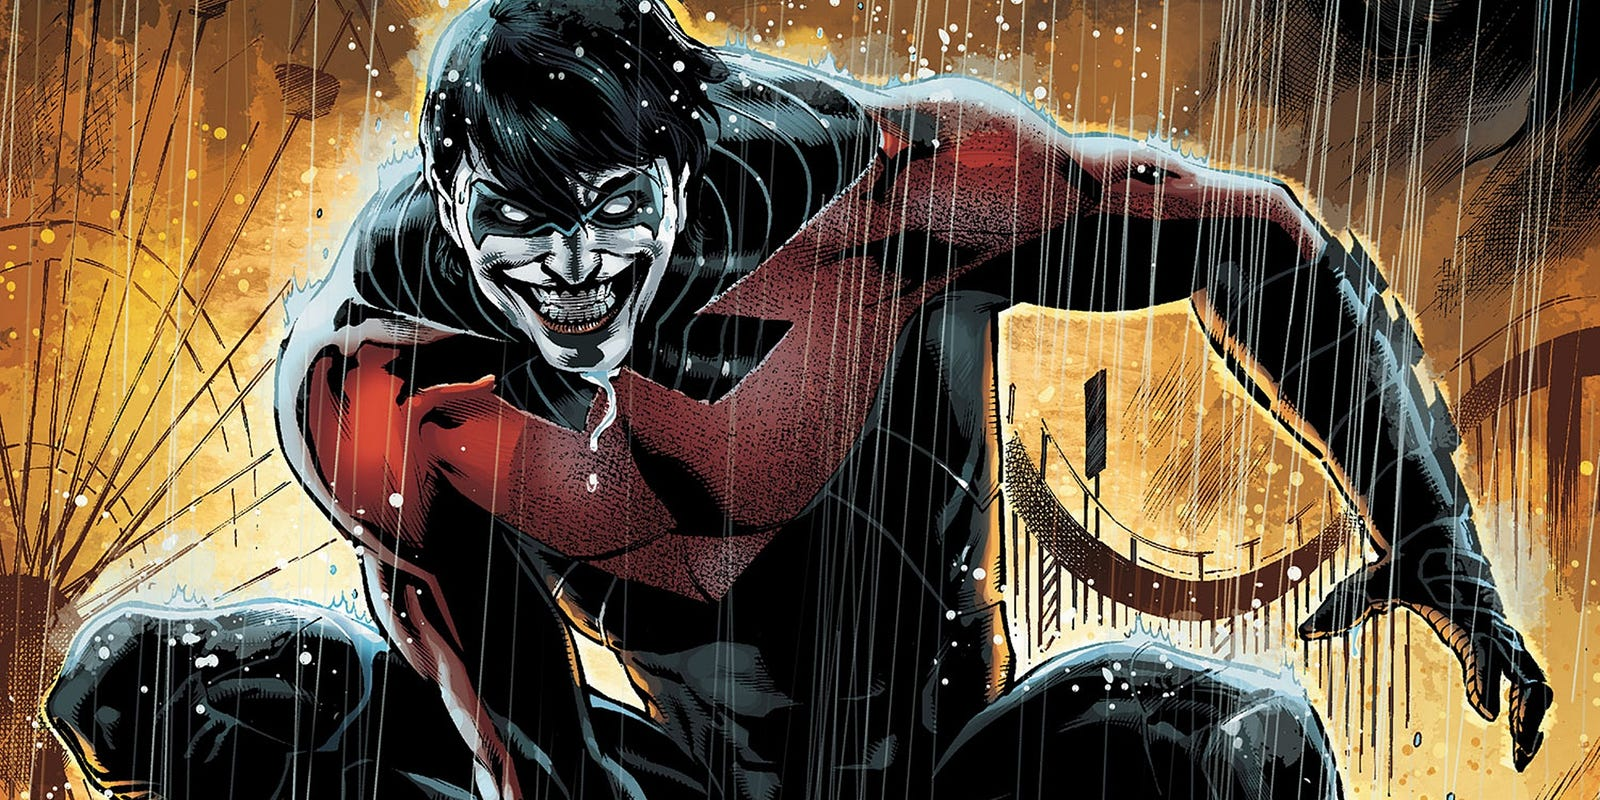 Joker doesn't clown around in new issue of 'Nightwing'